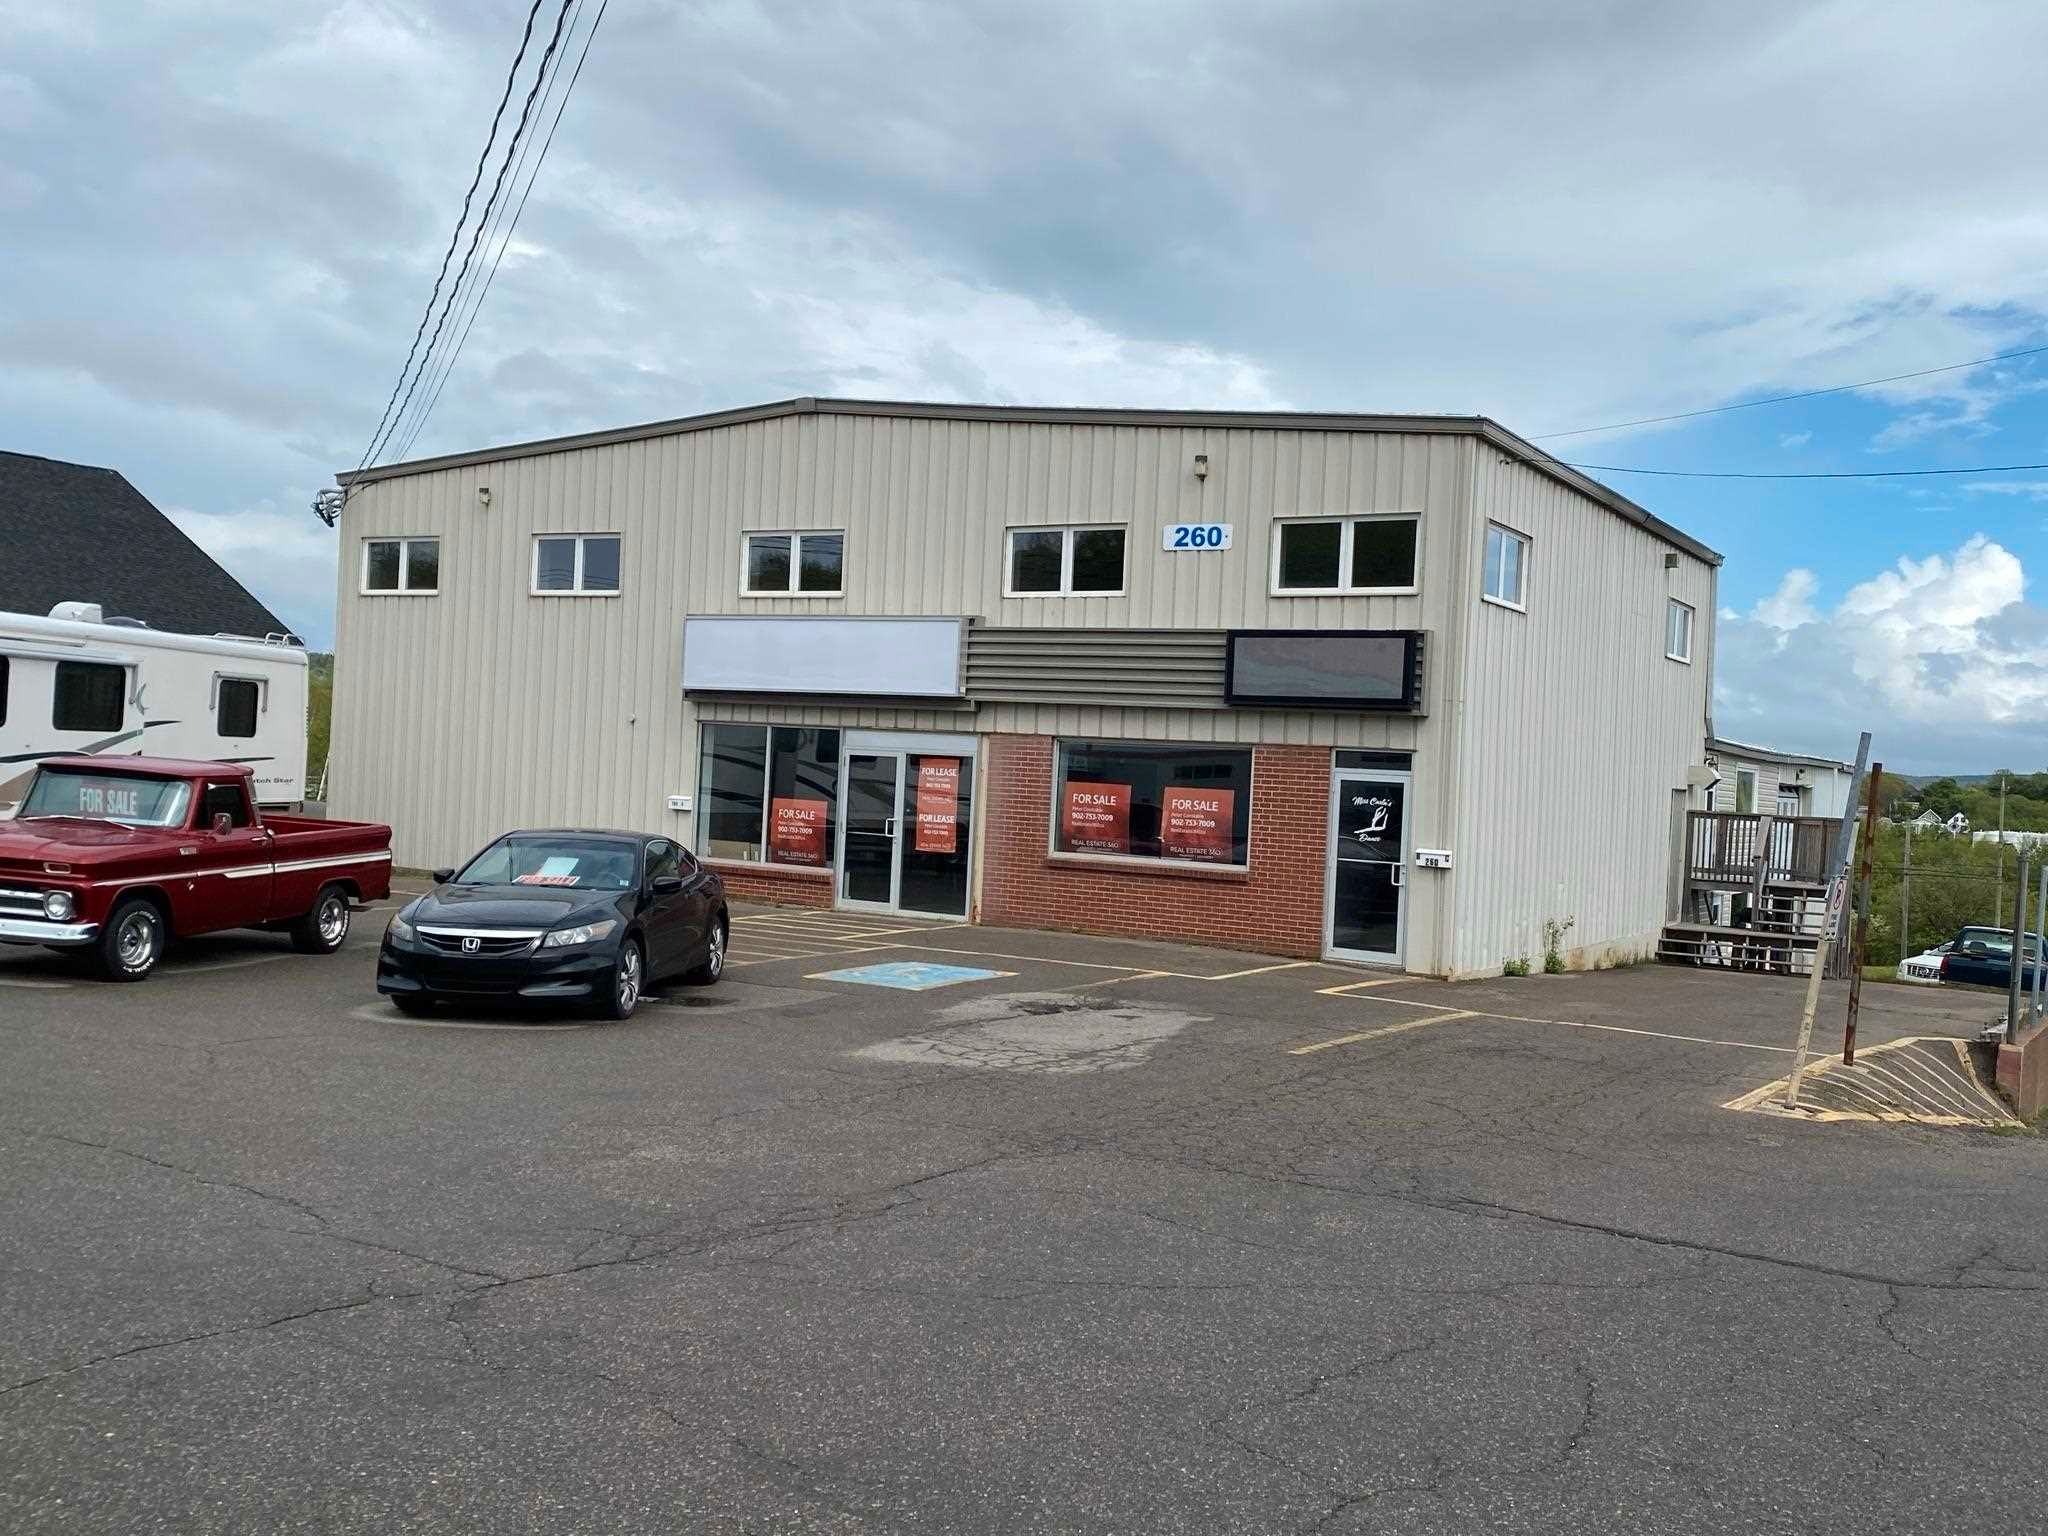 Main Photo: 260 E Westville Road in New Glasgow: 106-New Glasgow, Stellarton Commercial for sale or lease (Northern Region)  : MLS®# 202113483